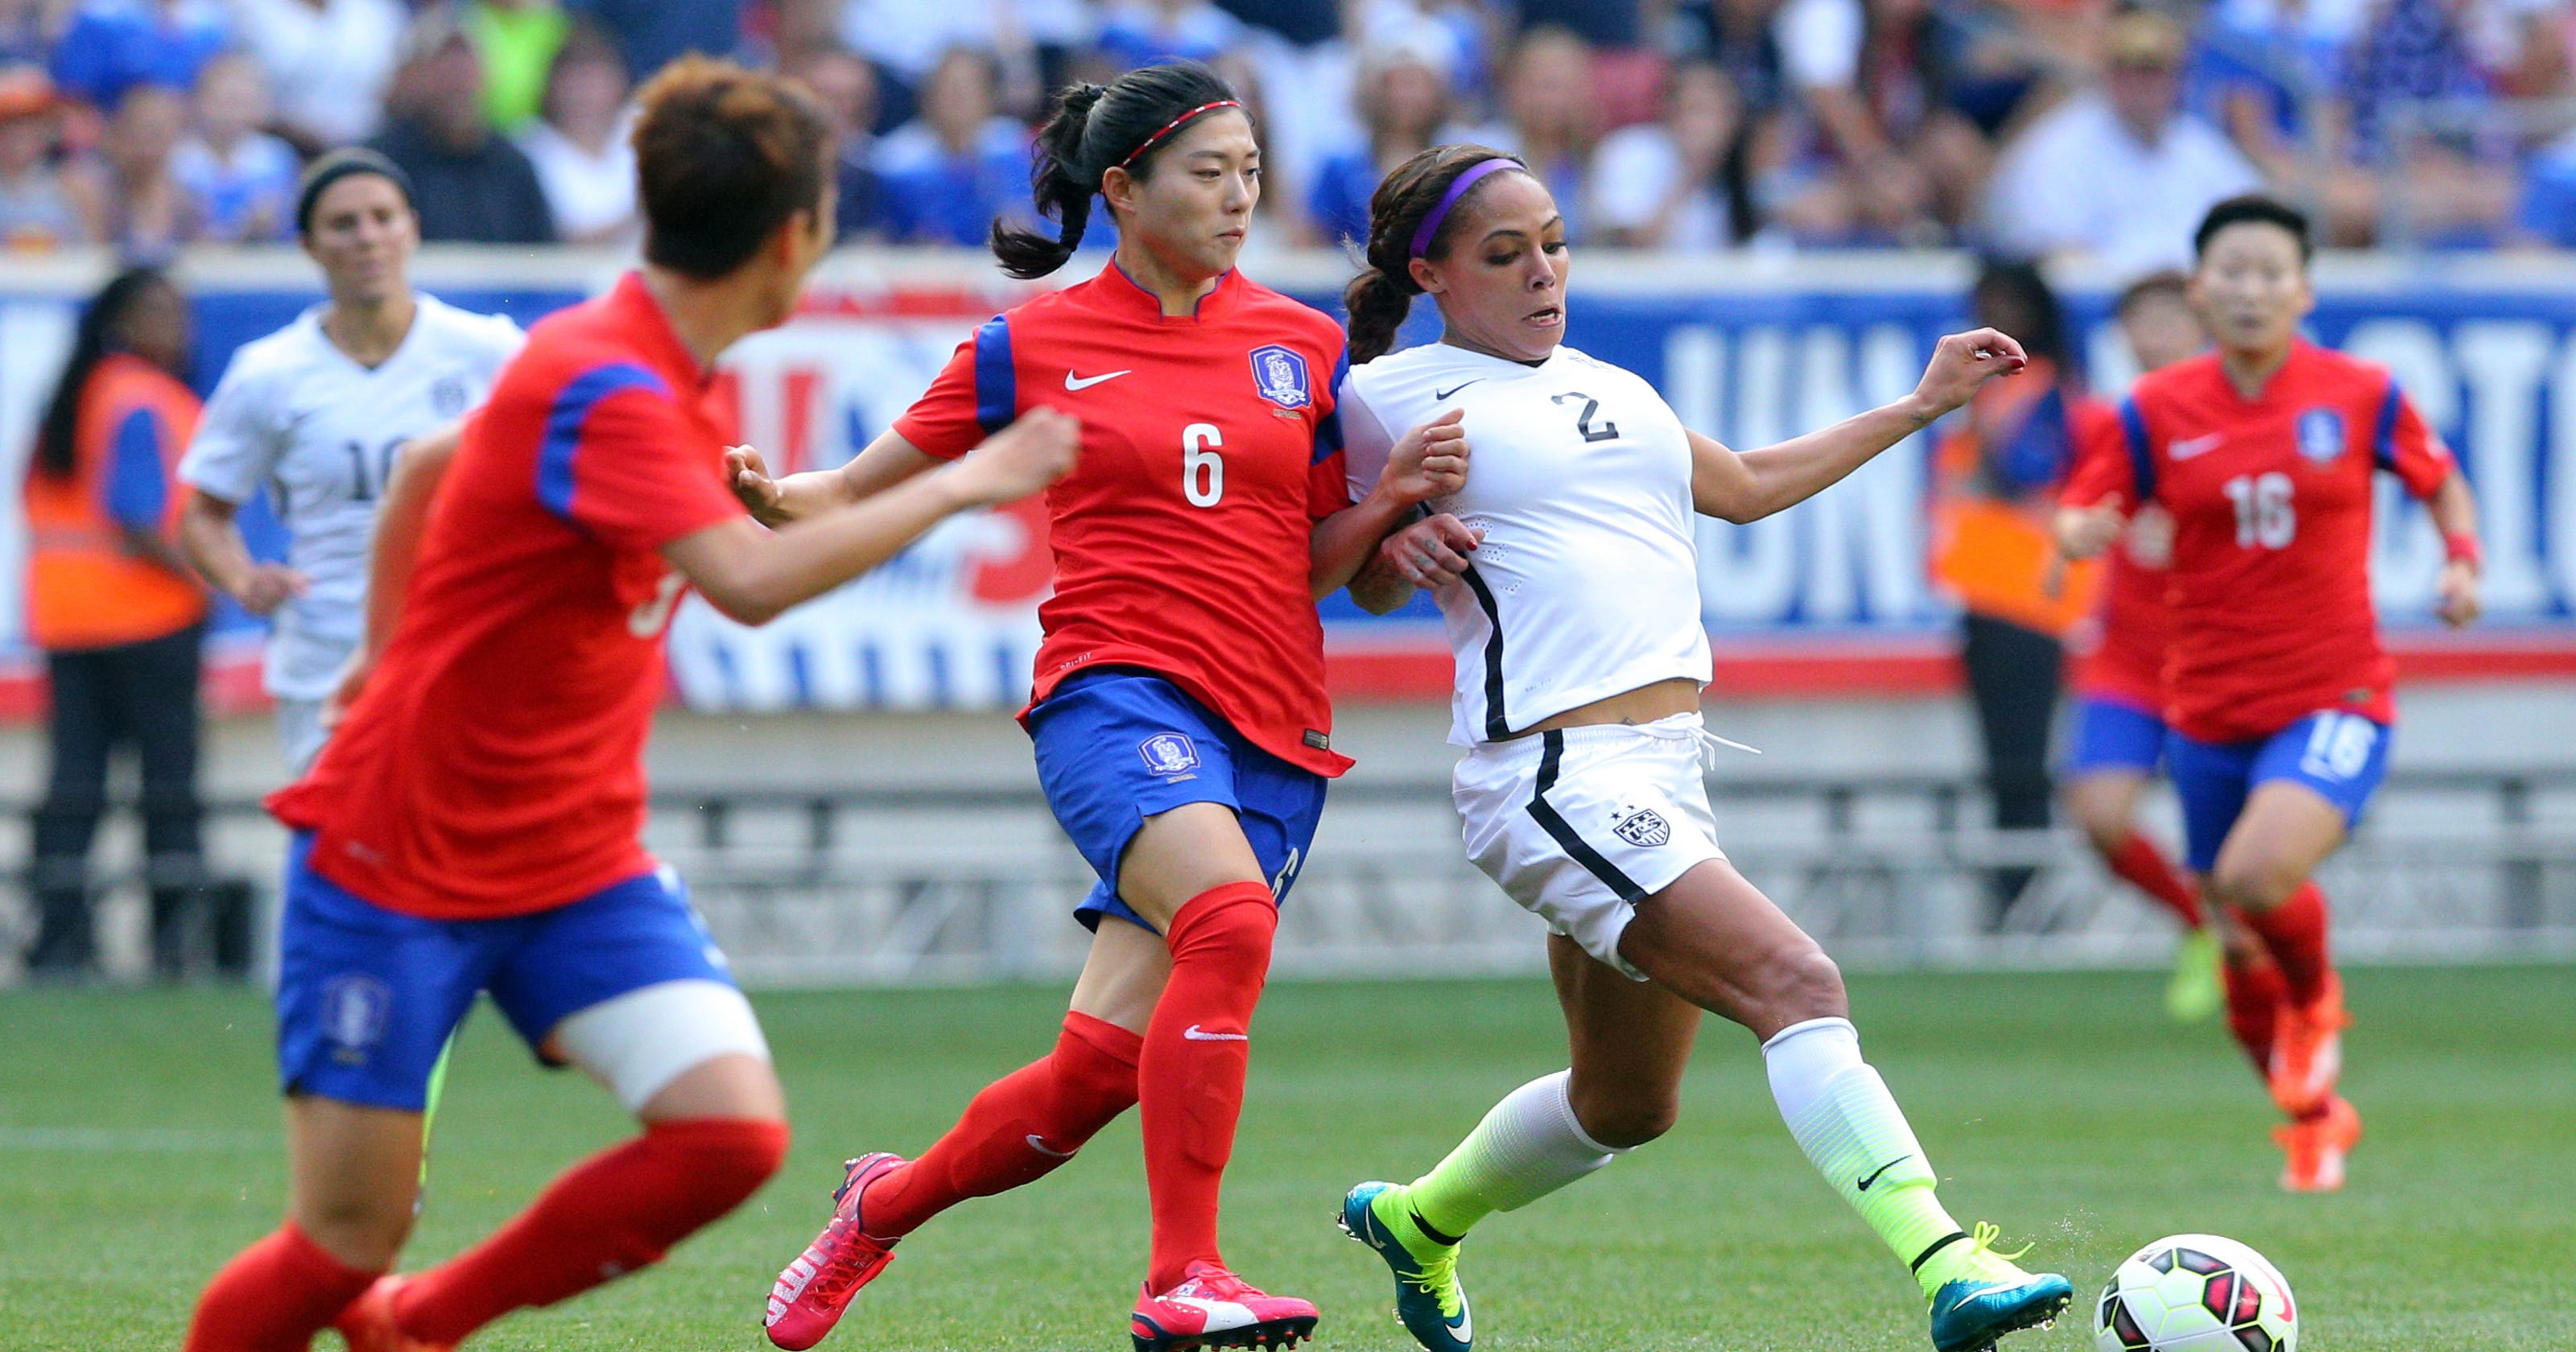 USA's Sydney Leroux has two homes, but one dream to win World Cup